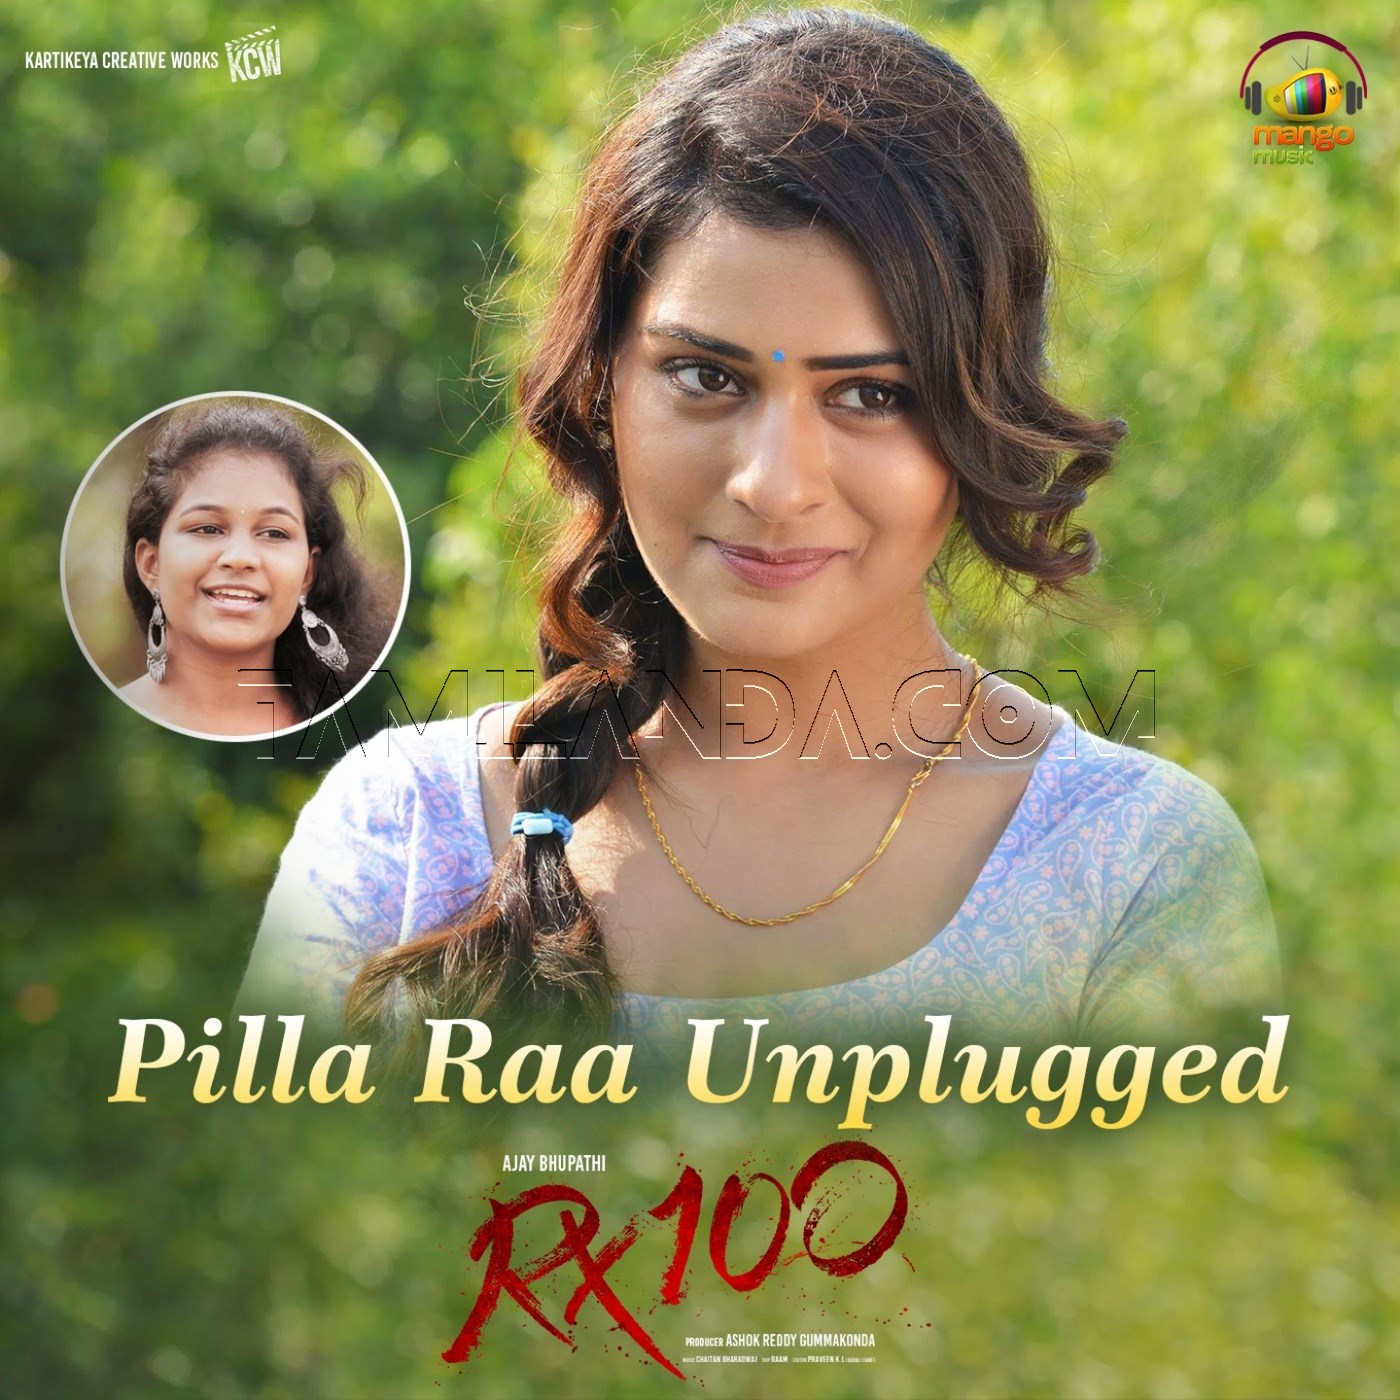 Pillaa Raa (Unplugged) (From RX 100) – Single FLAC Song